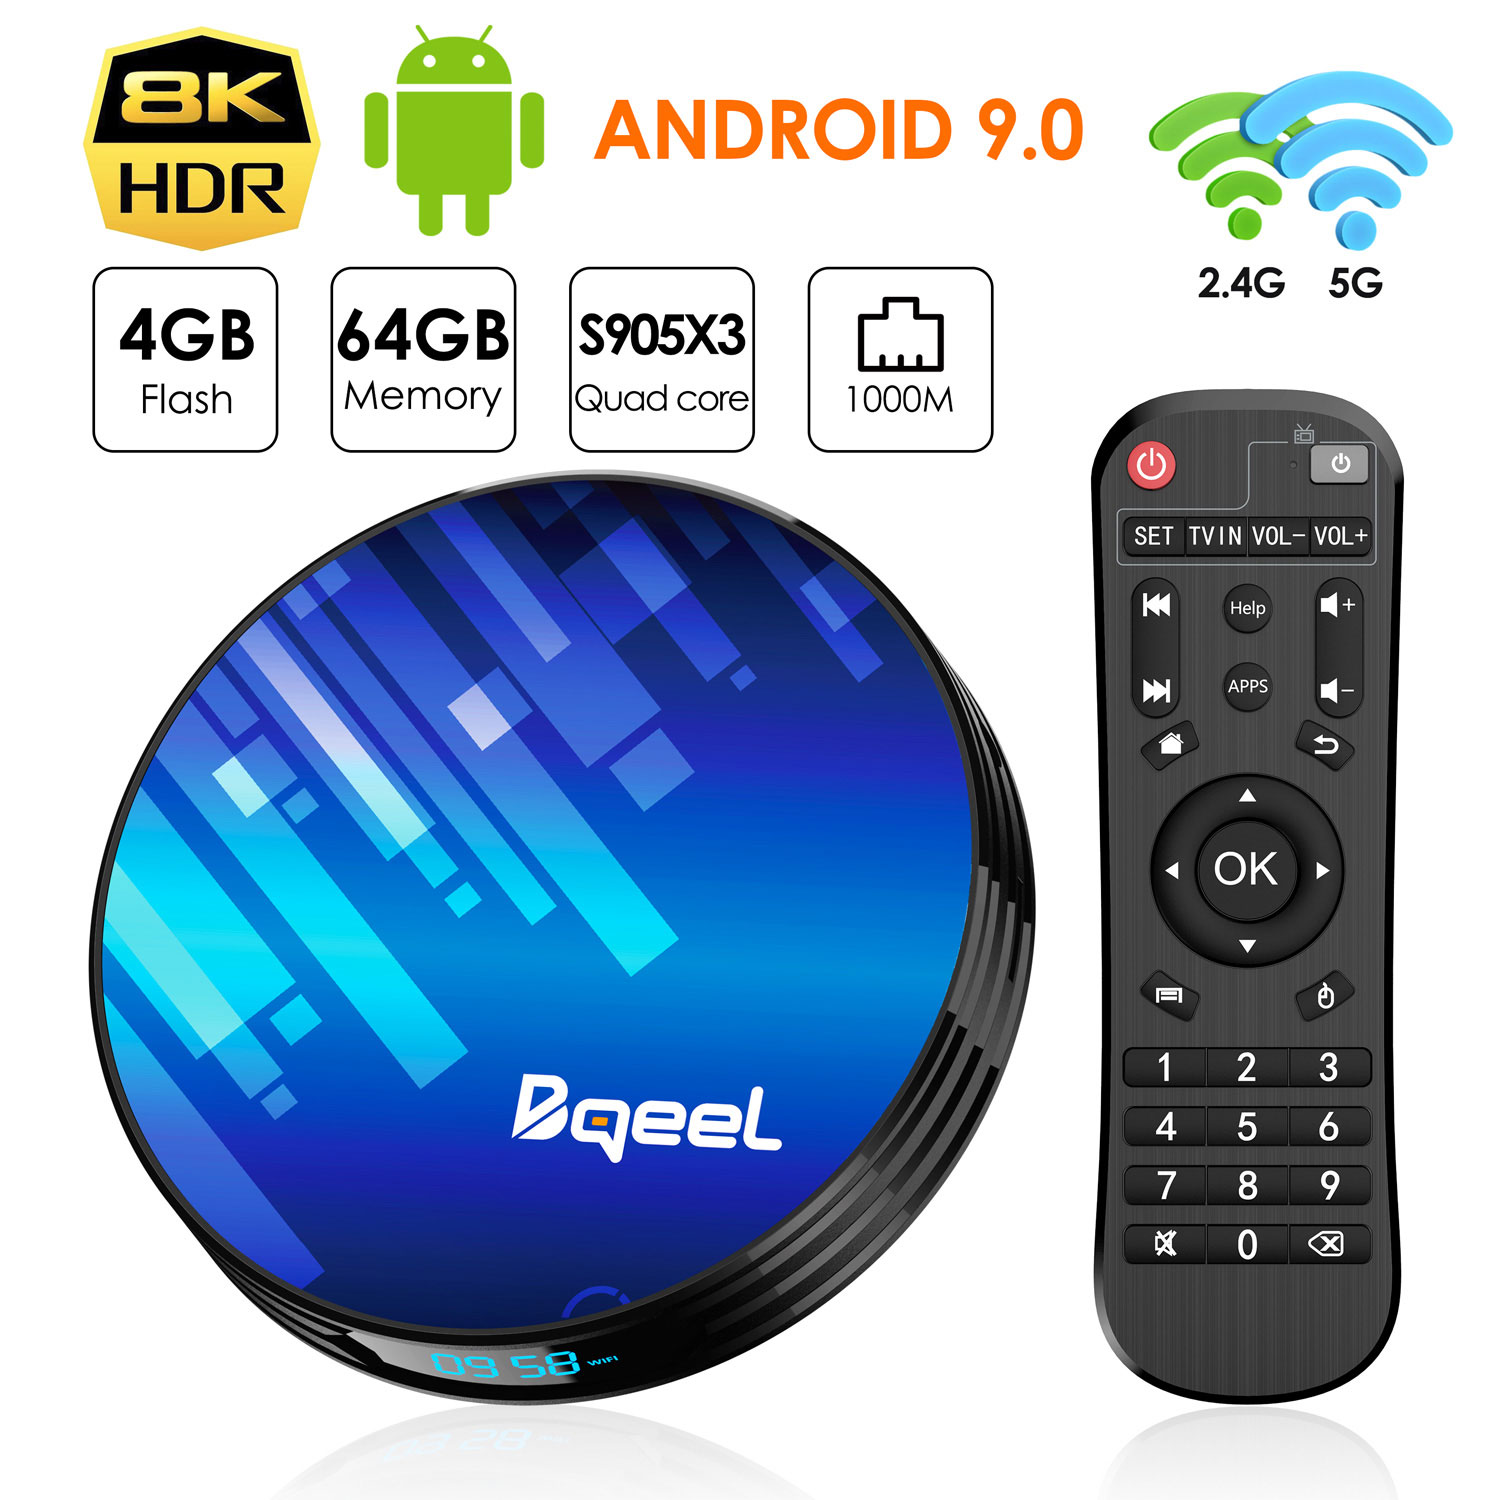 Android 9.0 TV Box 4GB RAM 64GB ROM, Bqeel TV Box Y8 Max S905X3 64-bit Quad Core with Dual Wi-Fi 2.4G/5.0G, BT 4.0/ 3D Ultra HD 8K/ H.265/ 1000M LAN/ USB 3.0 Smart TV Box